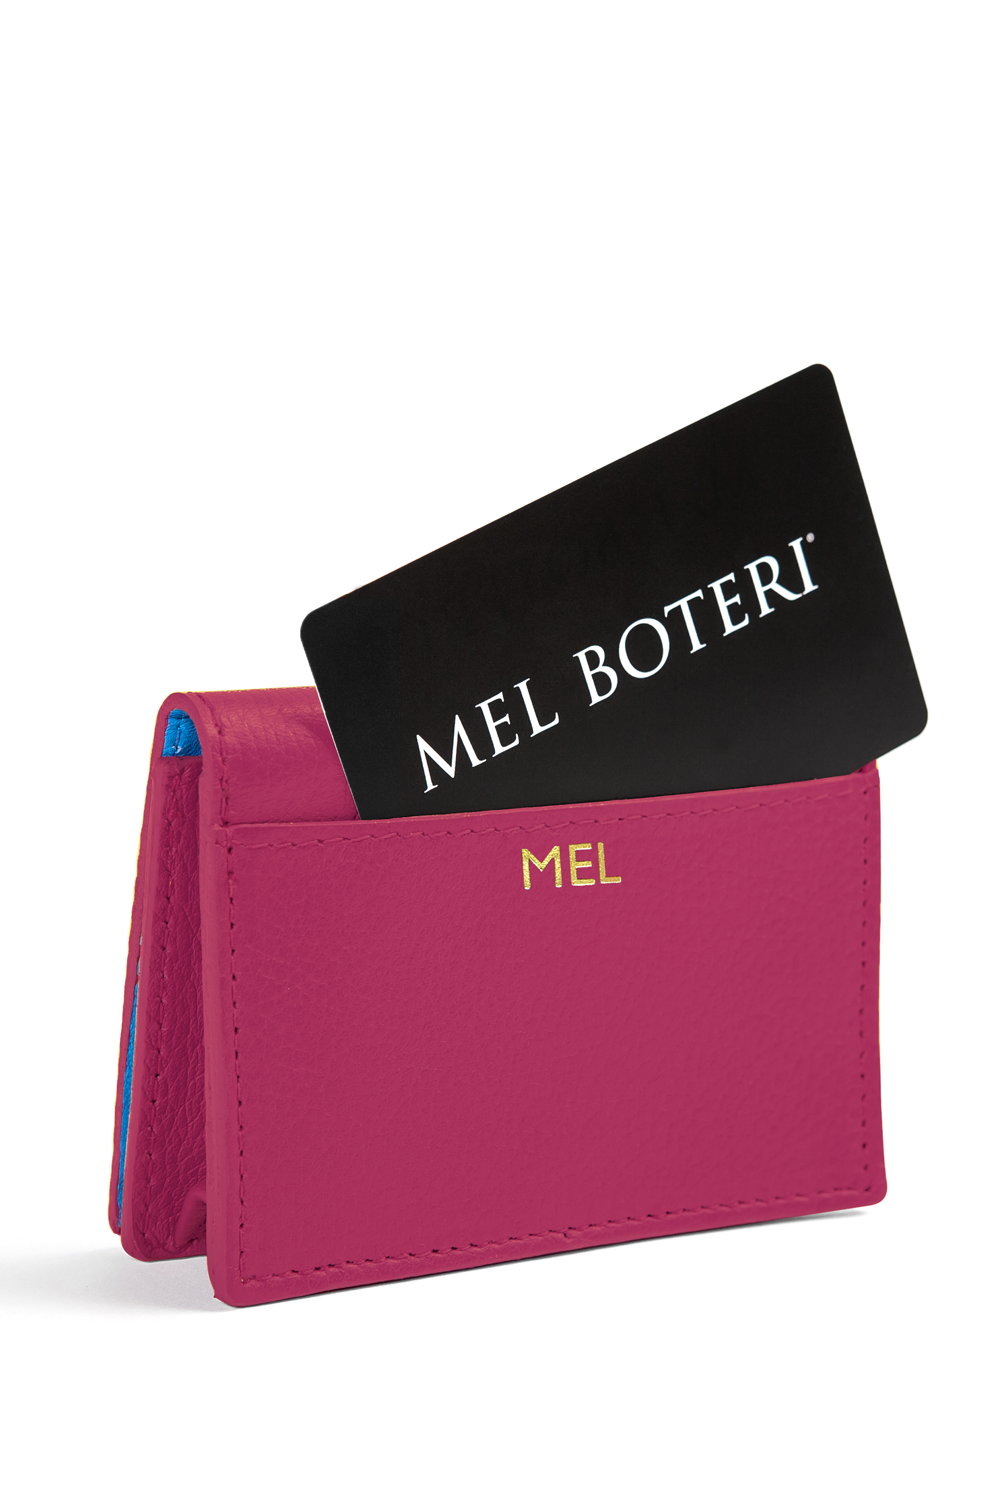 The Mel Boteri Leather Card Holder | Magenta Leather With Gold Monogram | Mel Boteri Gift Ideas | Design Your Own